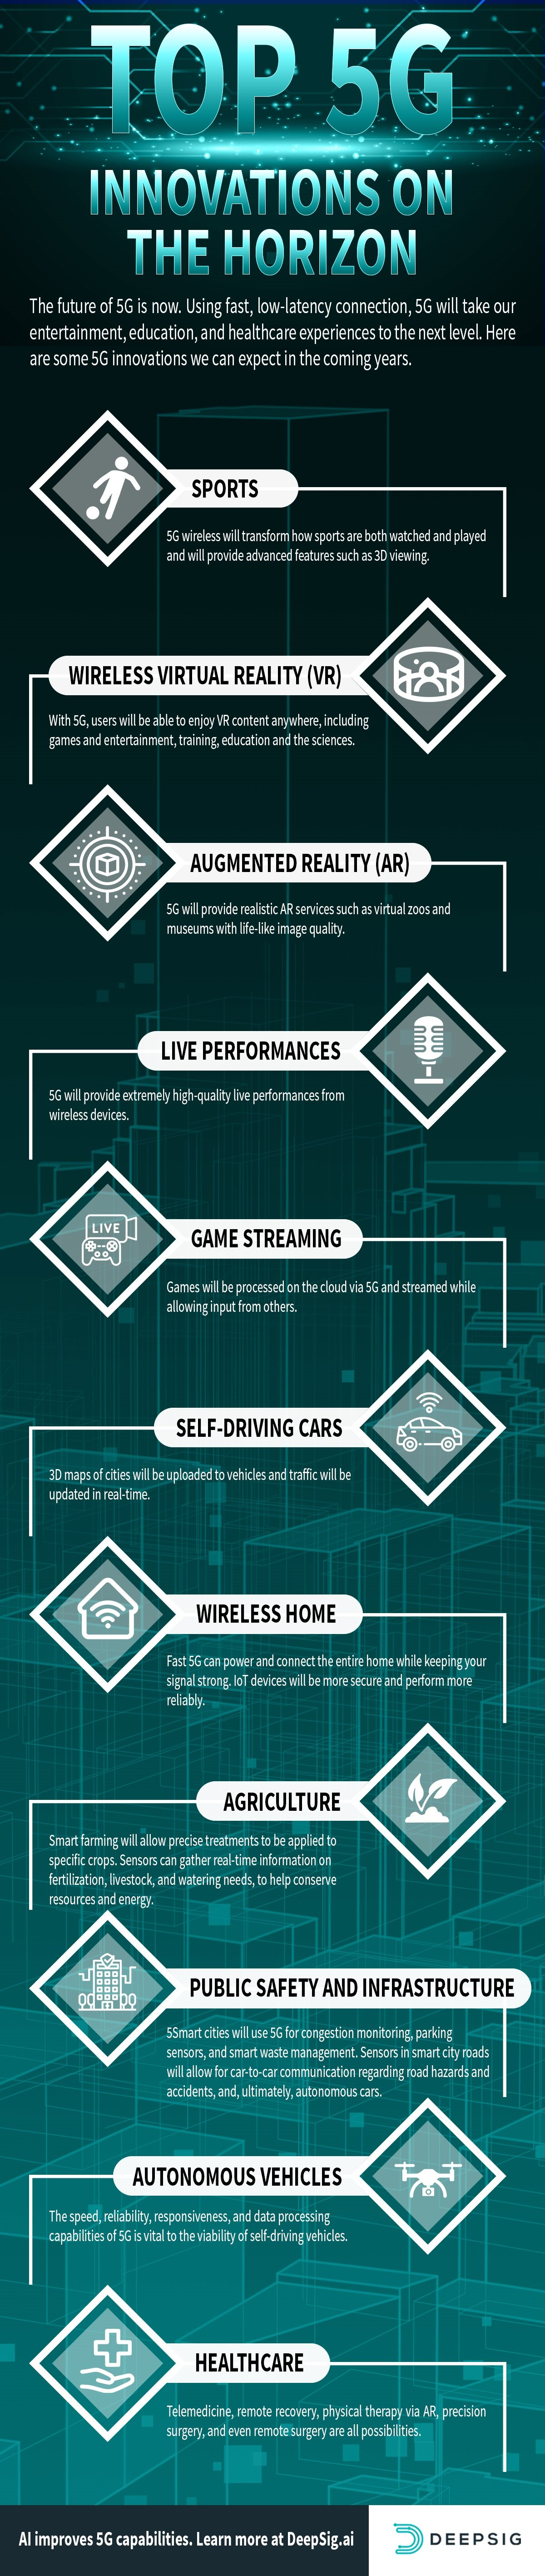 Top 5G Innovations on the Horizon infographic